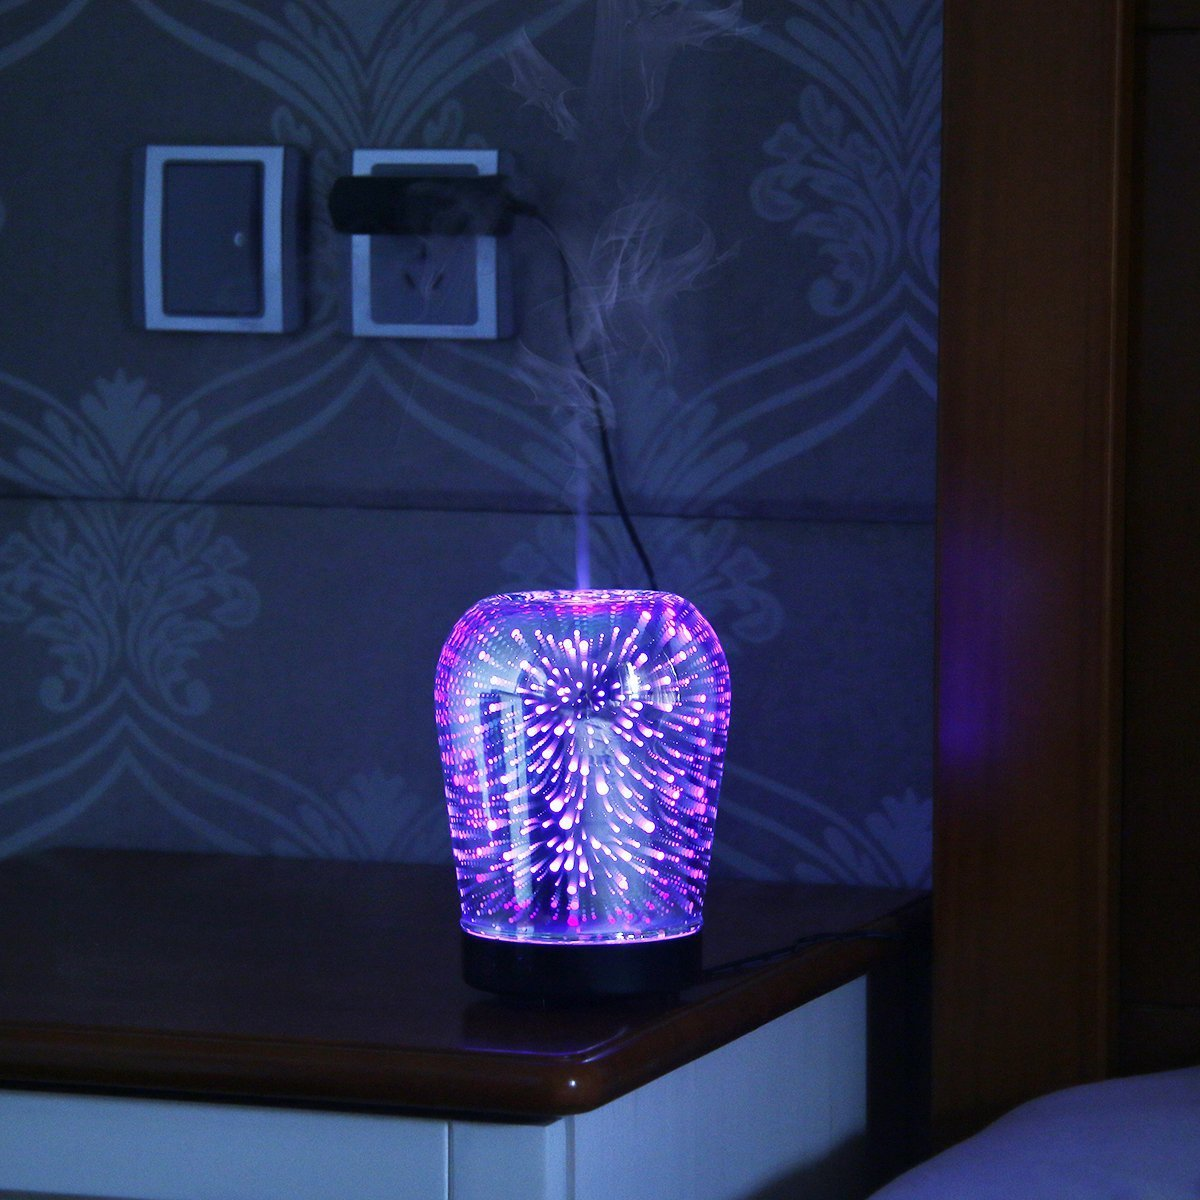 Loskii LH-963 3D LED Lights Oil Diffuser Ultrasonic Cool Mist Aromatherapy Humidifier 16 Color Changing Starburst Light Lamp 100ML Volume Humidifier (Plug EU plug) by LEEPRA (Image #4)